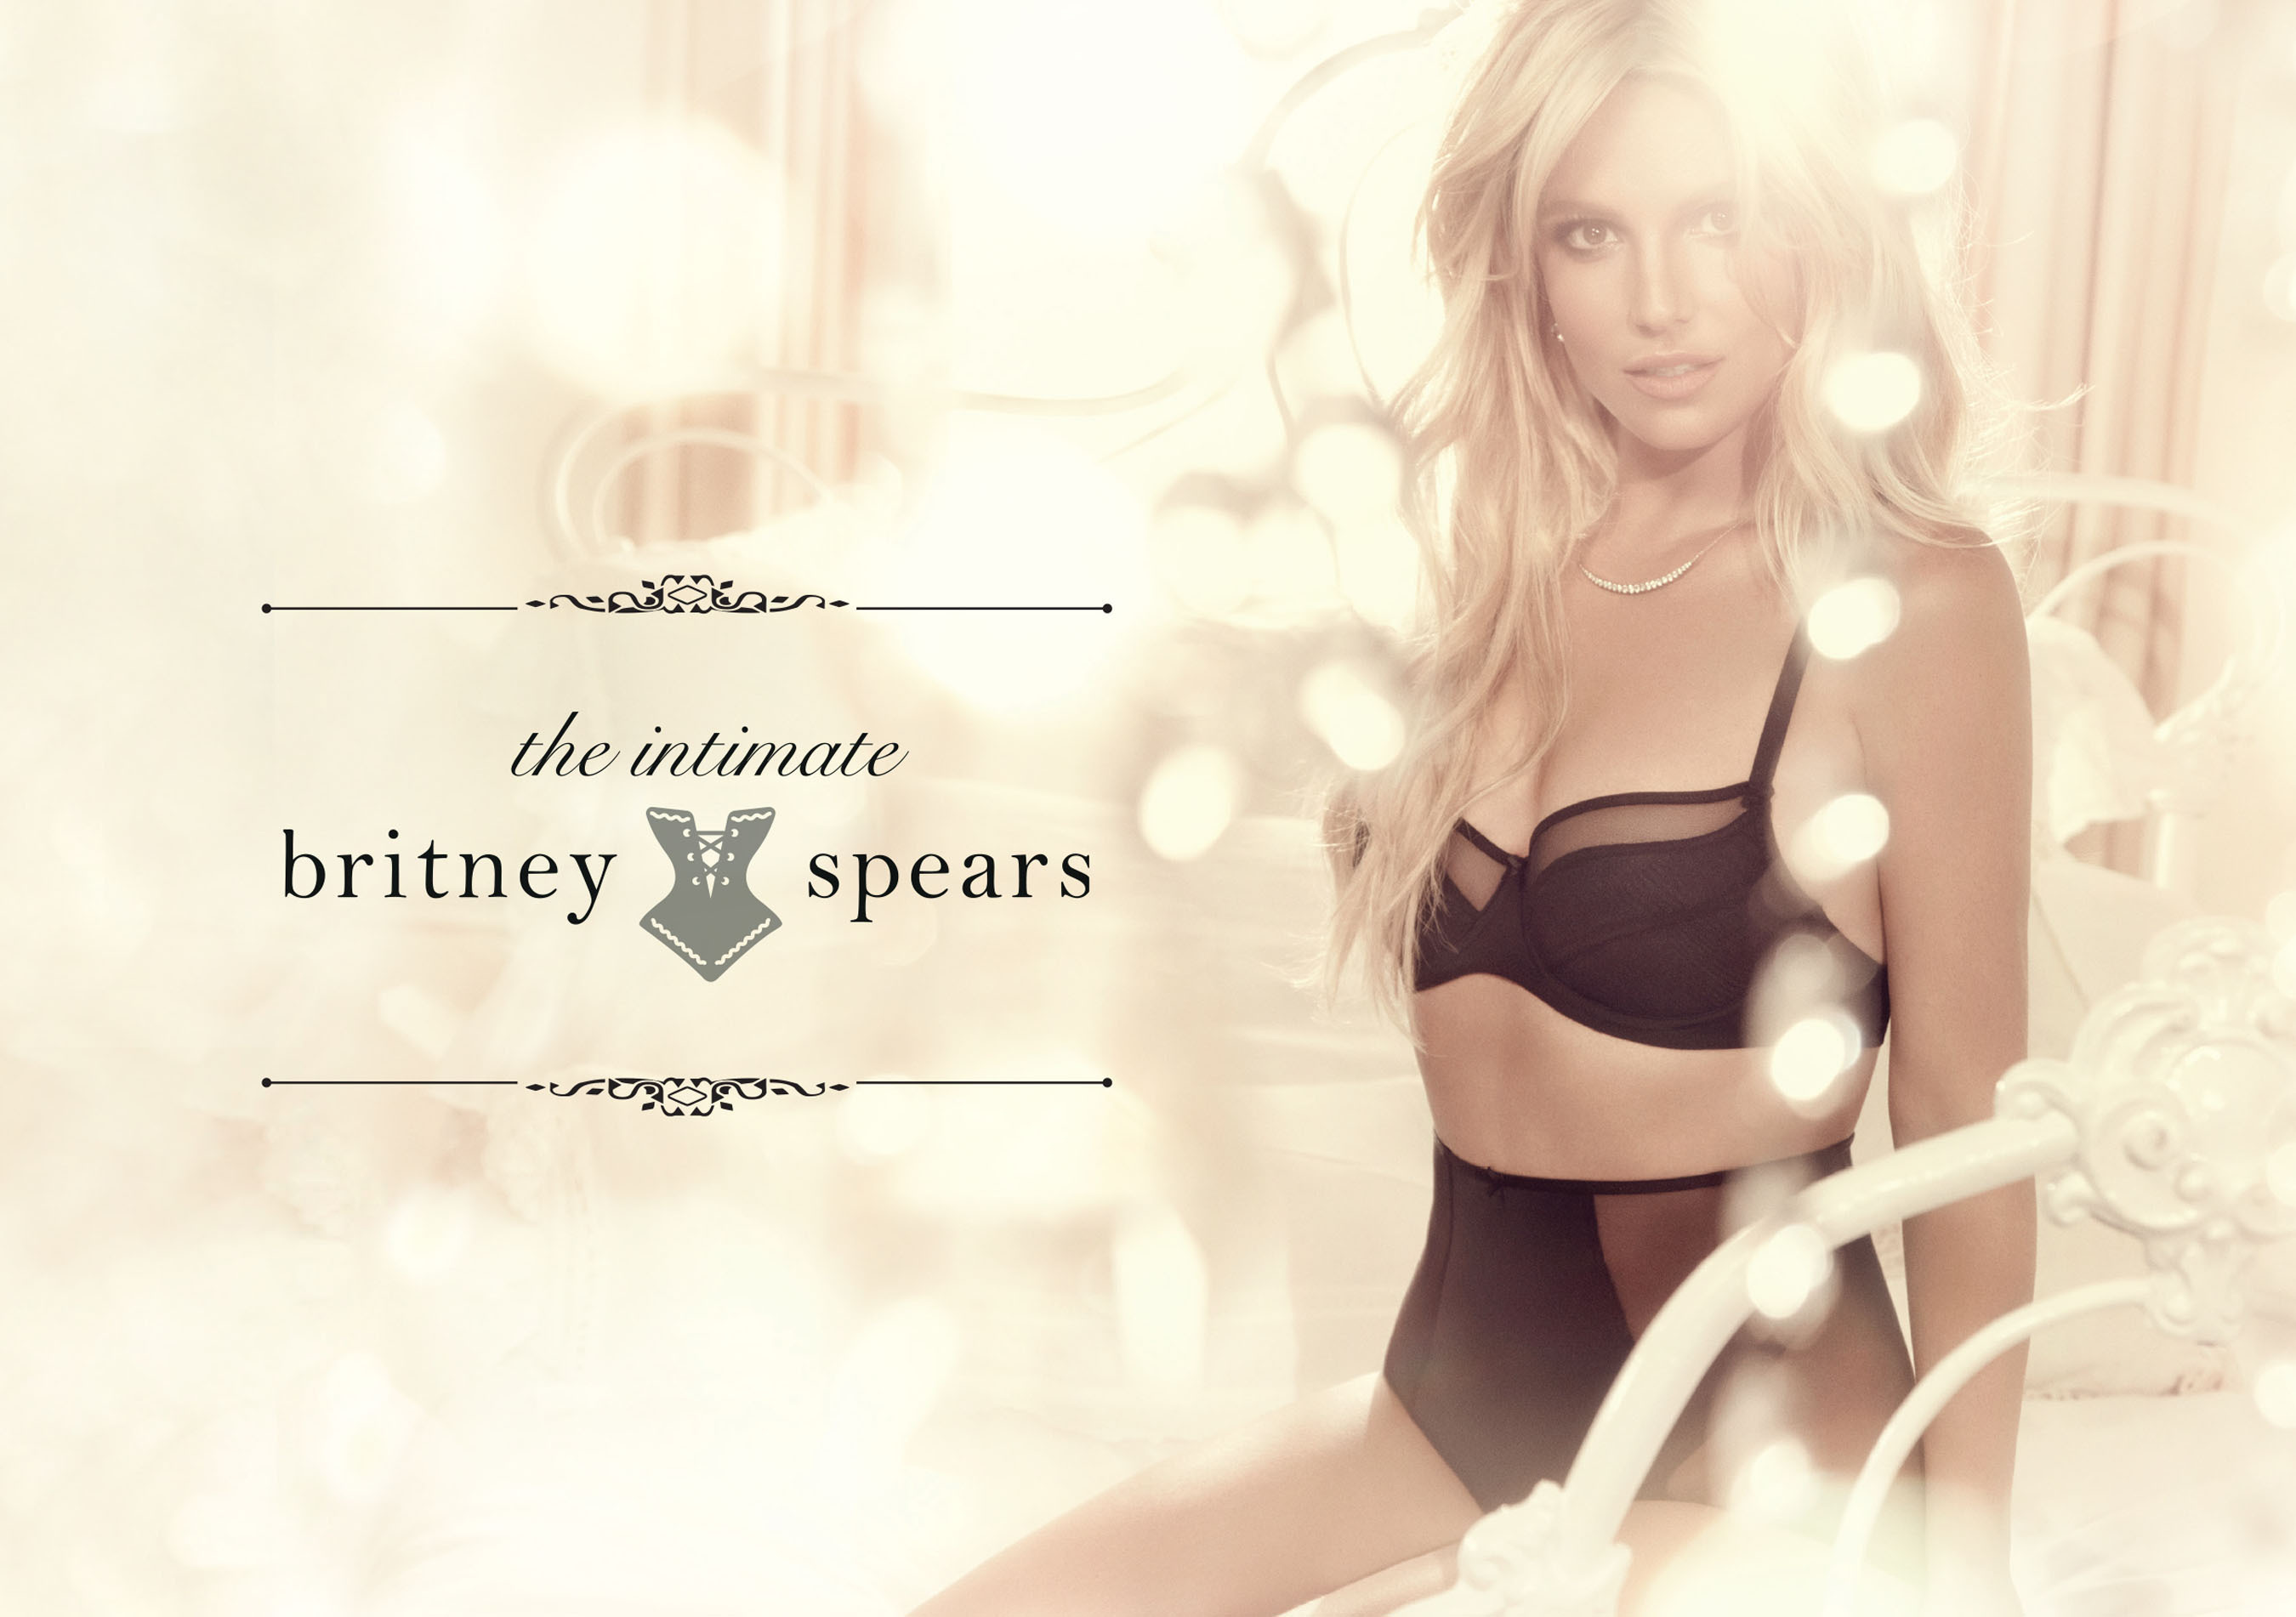 The Intimate Britney Spears (PRNewsFoto/The Intimate Britney Spears)